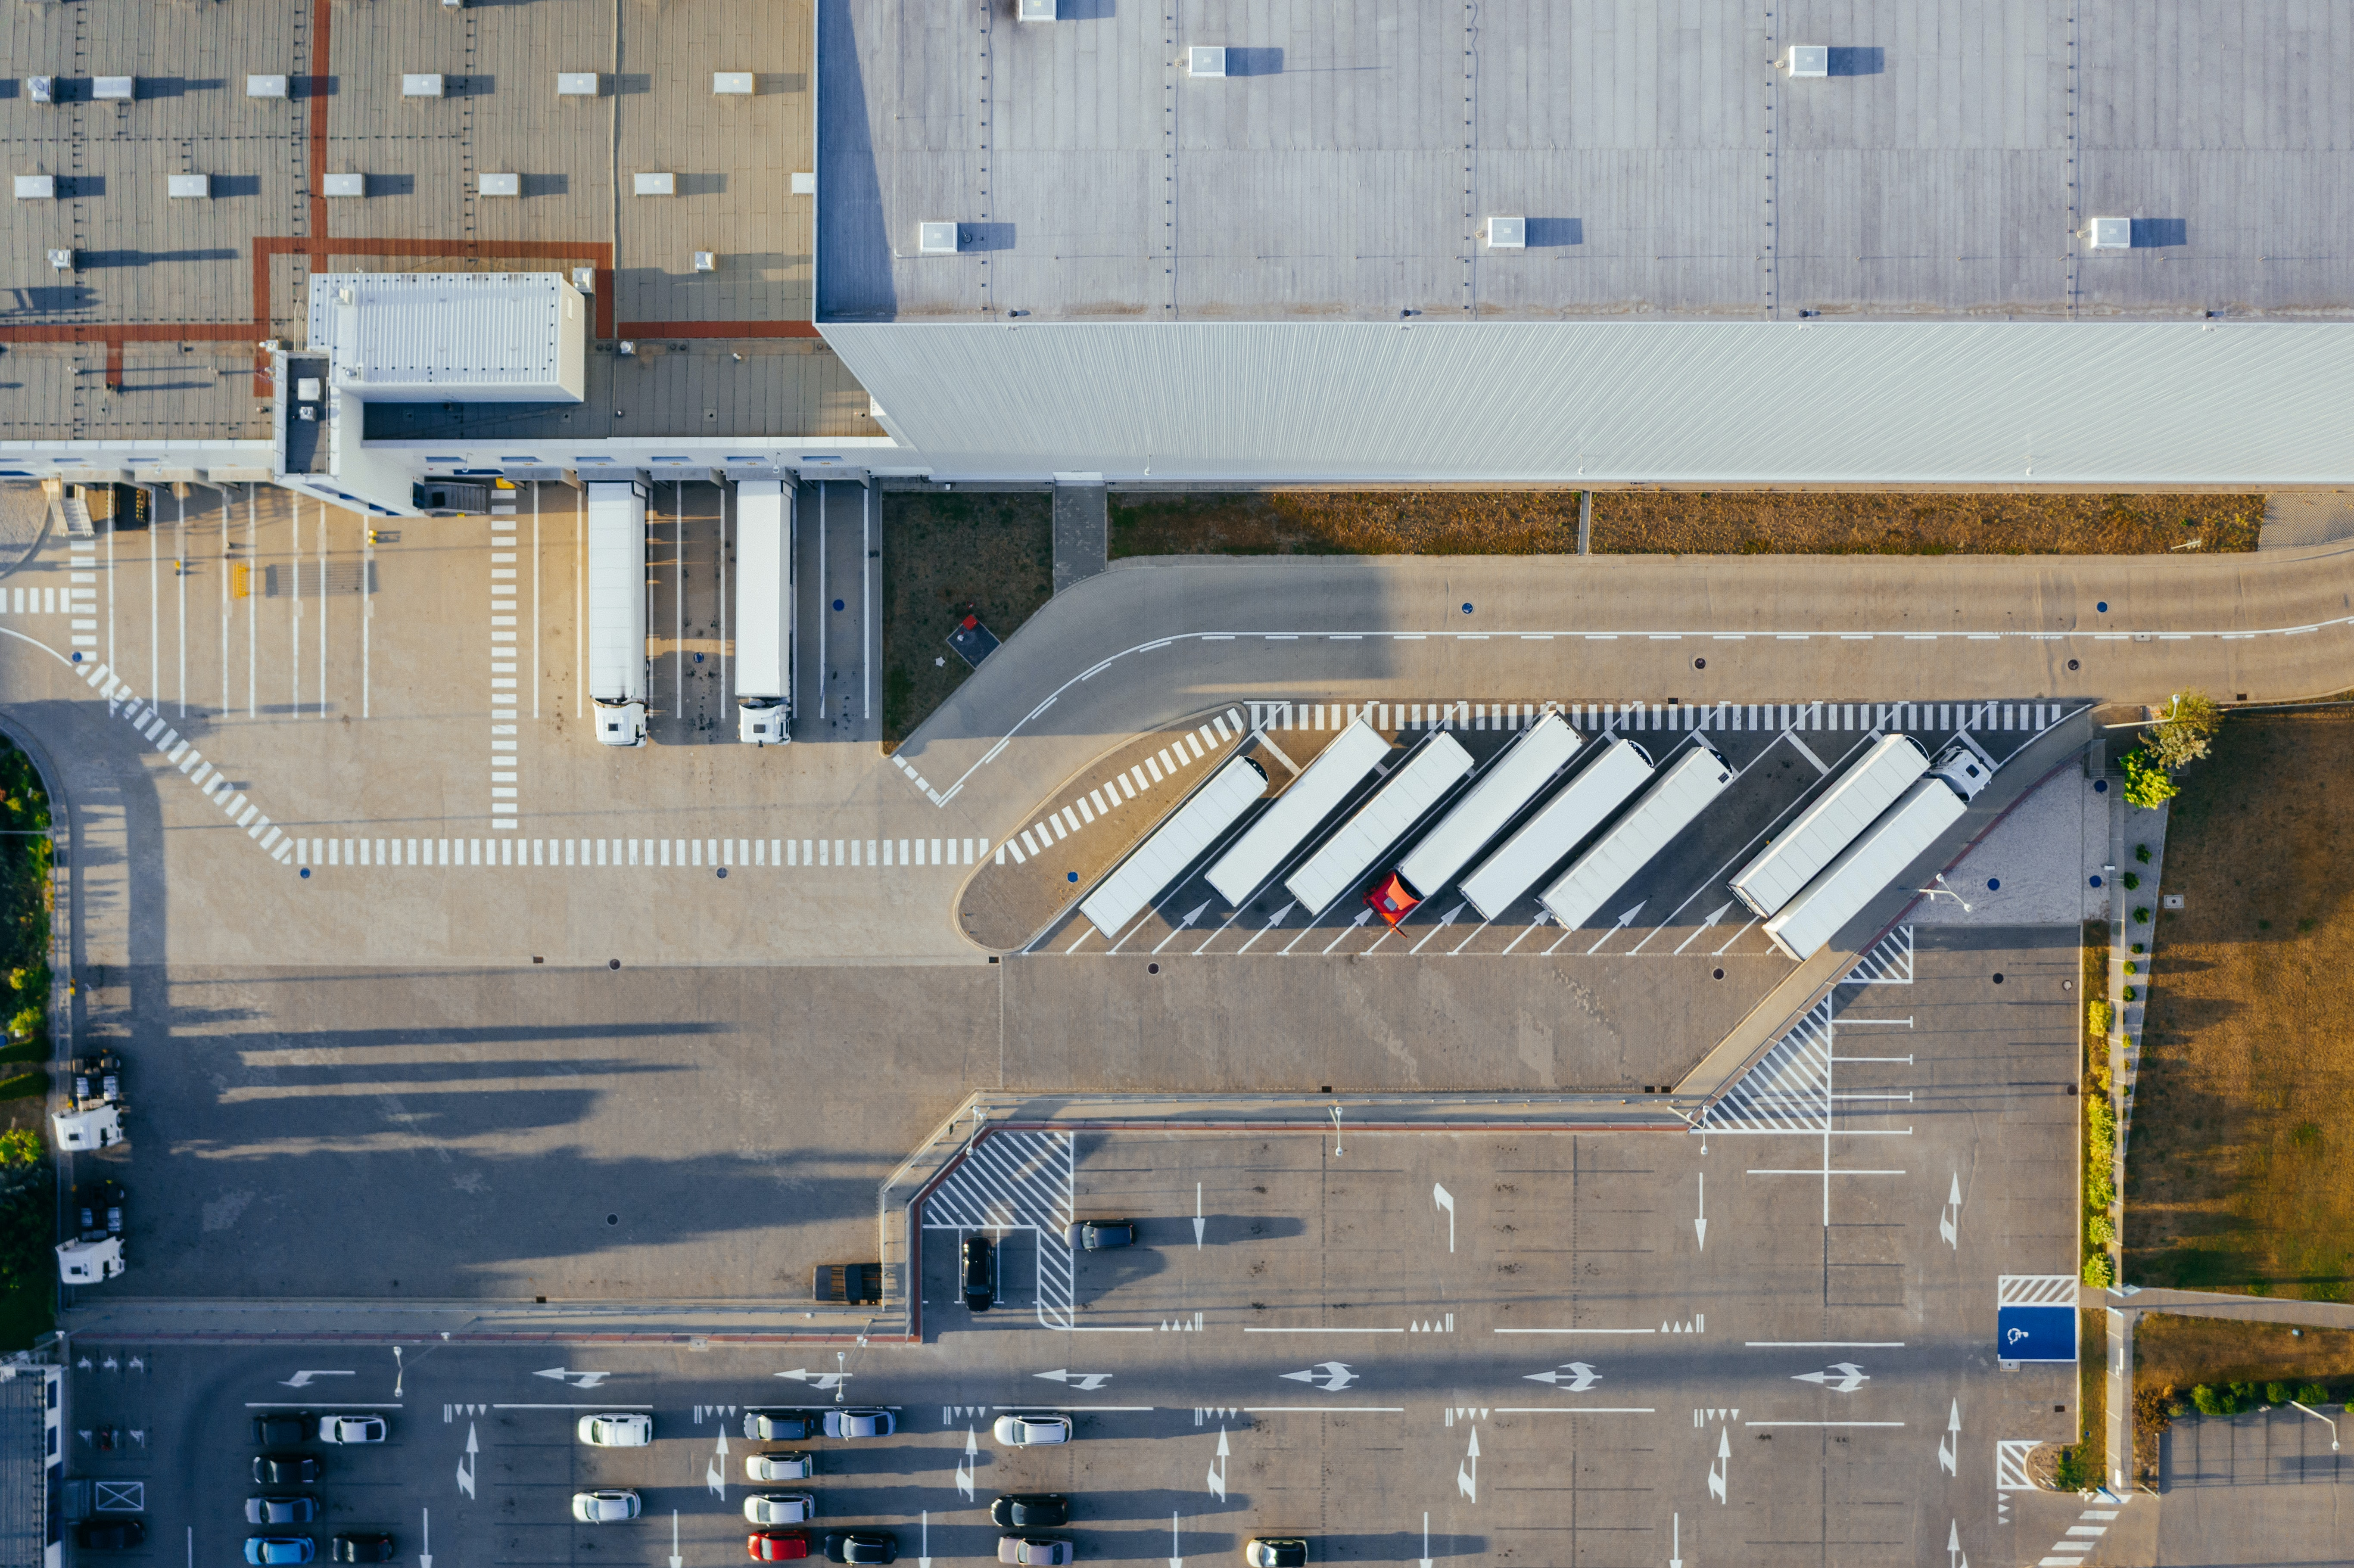 warehouse from an aerial view